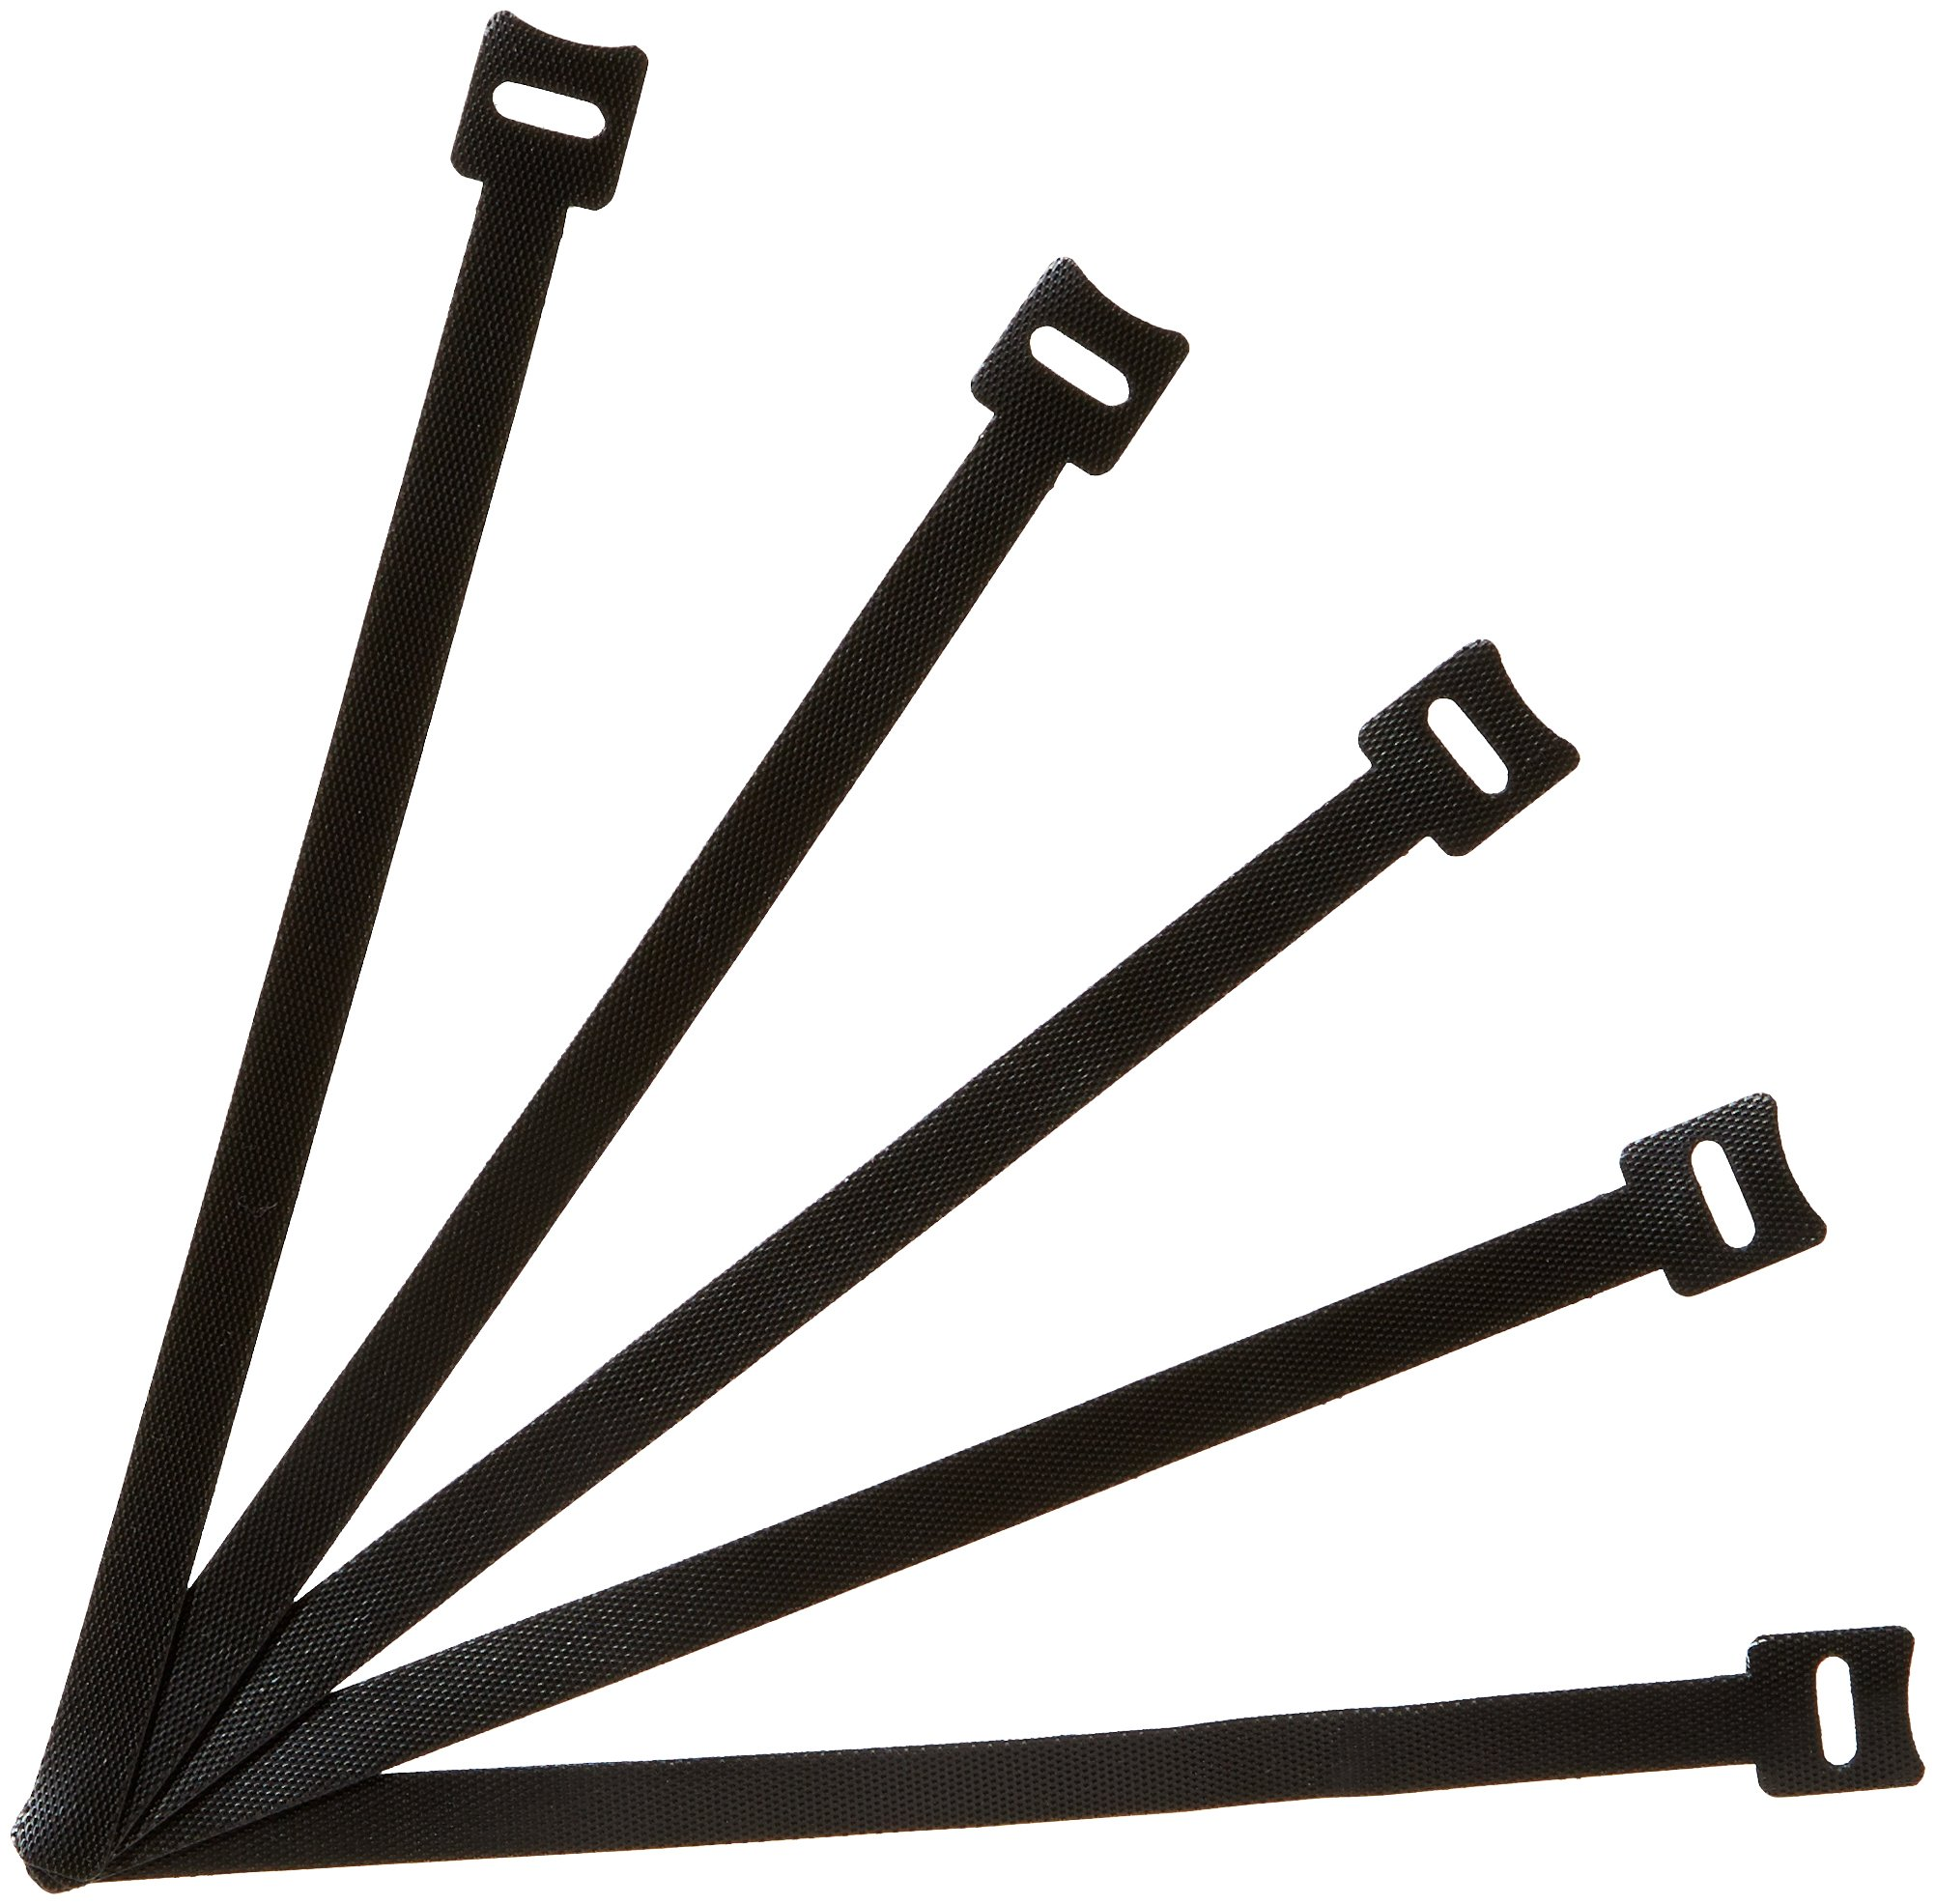 AmazonBasics Reusable Cable Ties, 8 Inches, 50-Pack